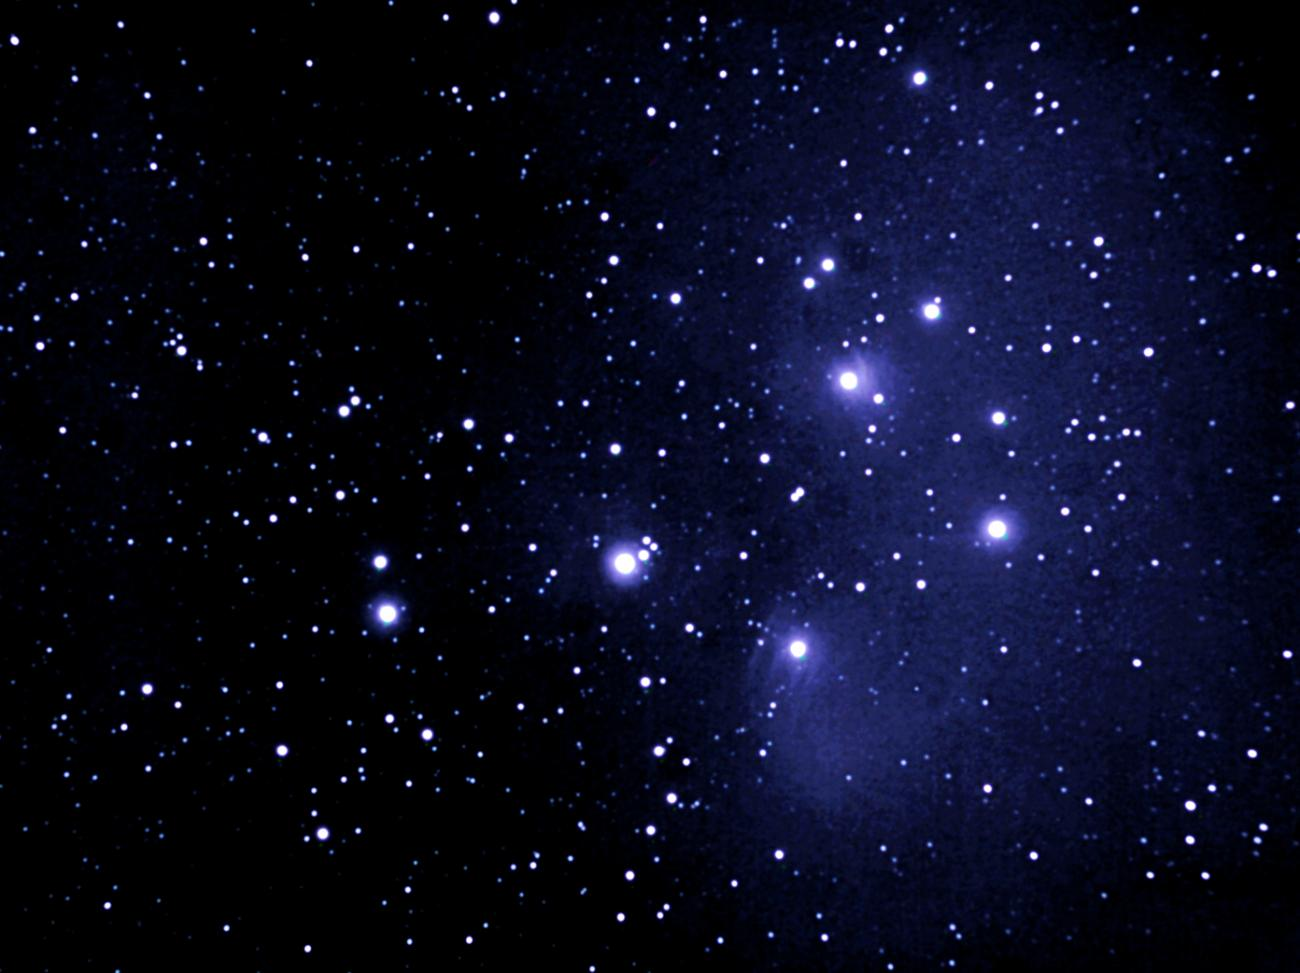 Pleiades - Messier object 45